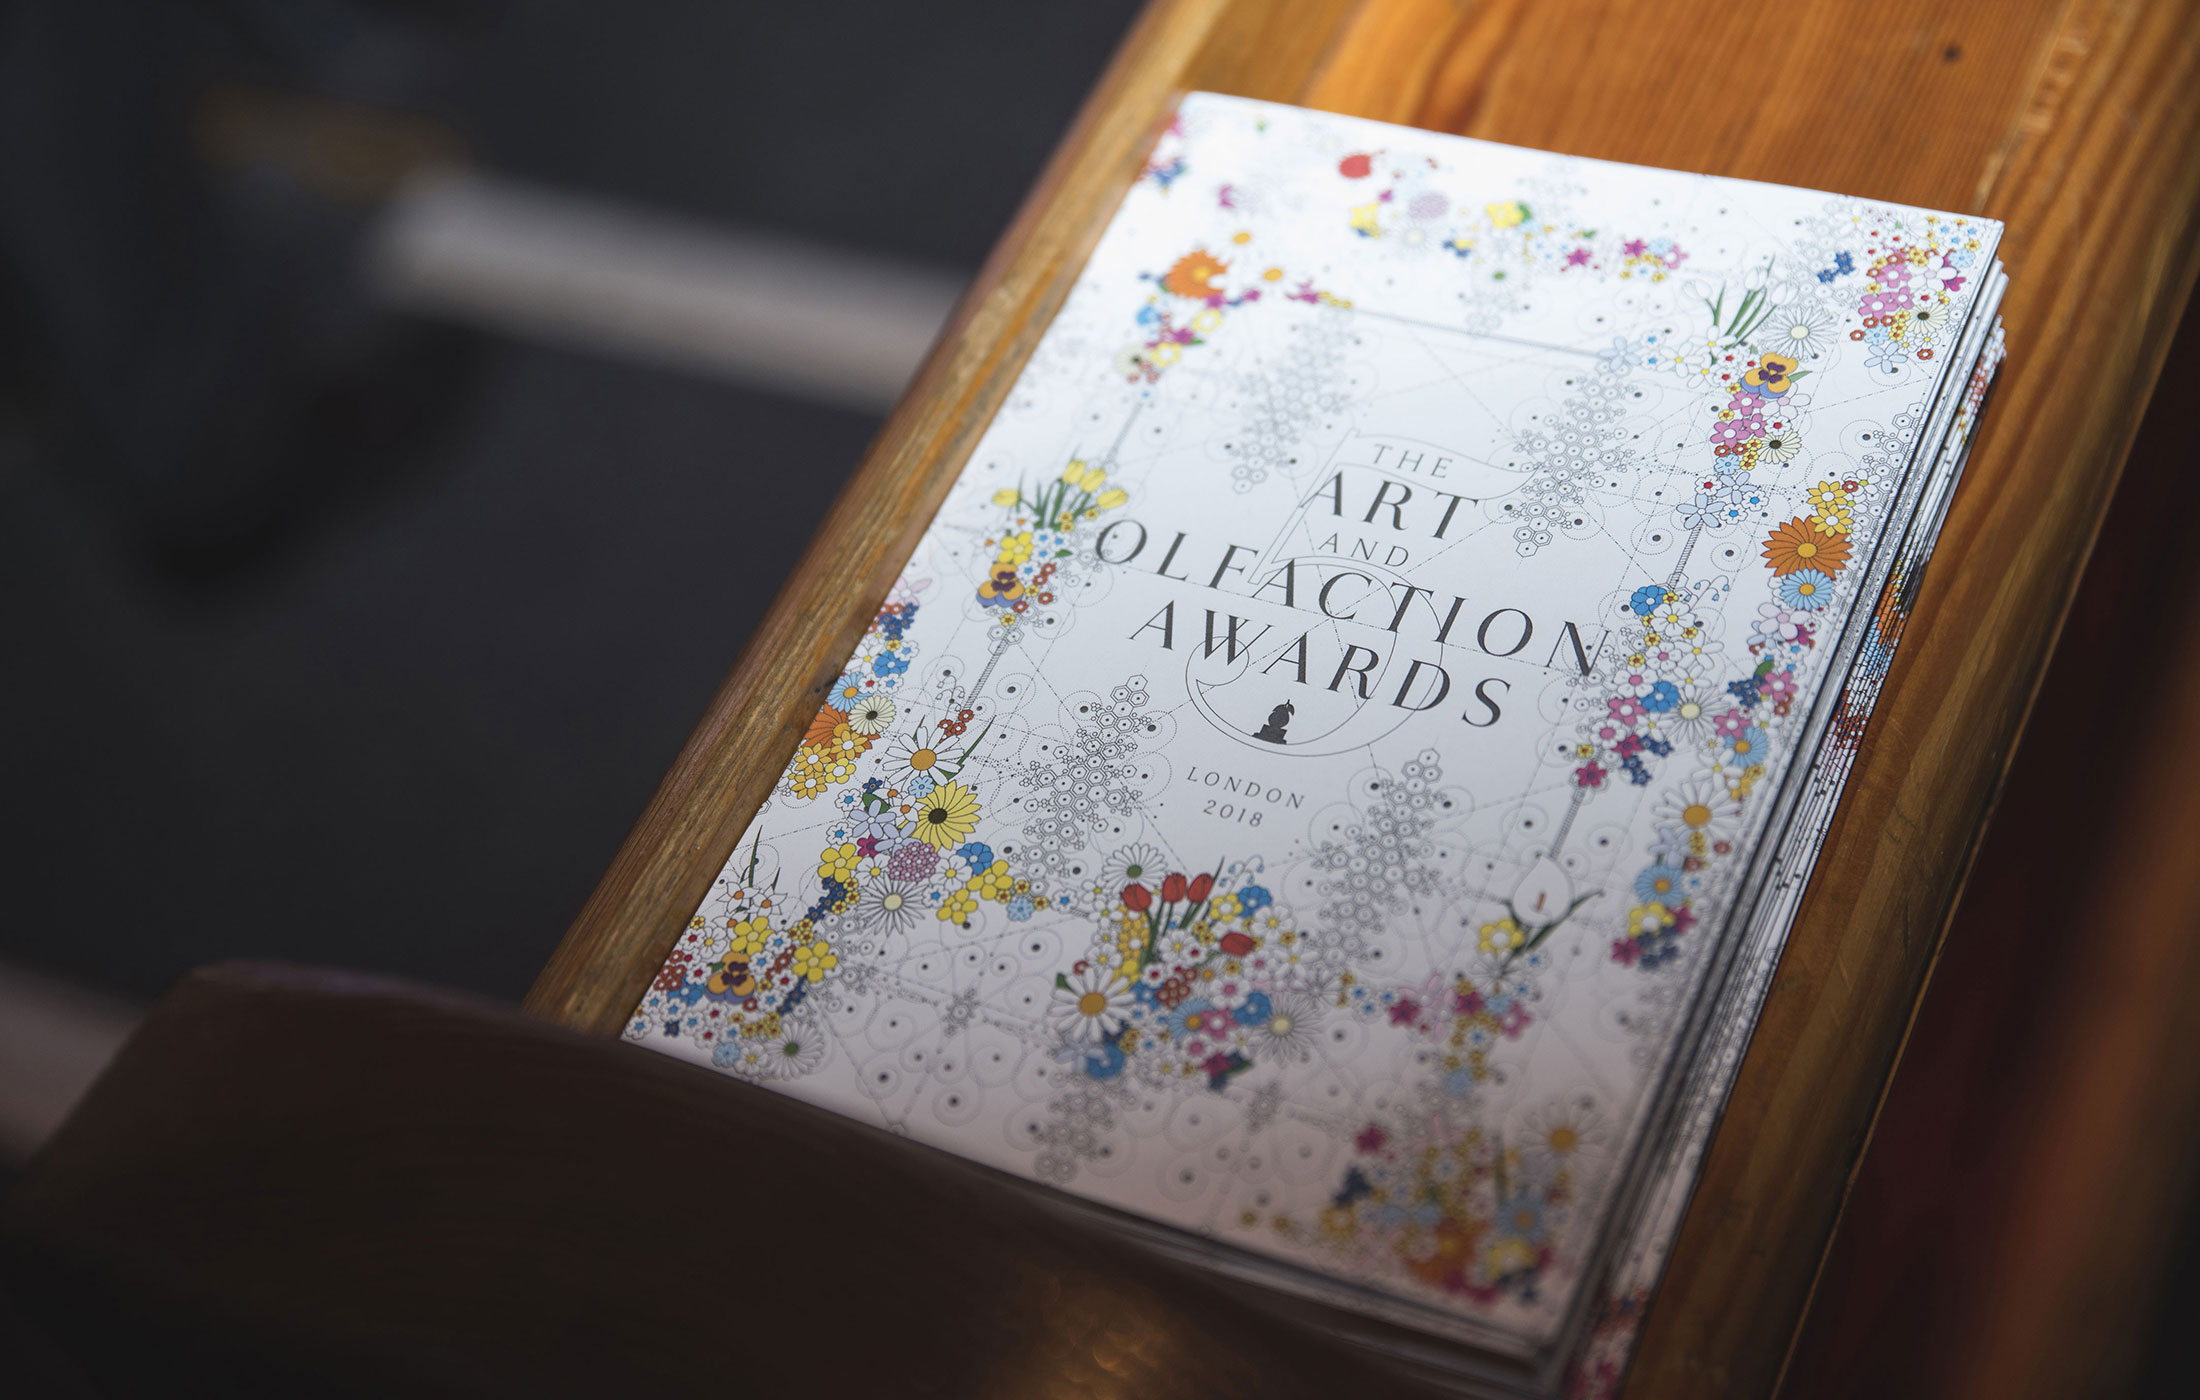 The Art and Olfaction Awards design by Micah Hahn, Photo by Marina Chichi